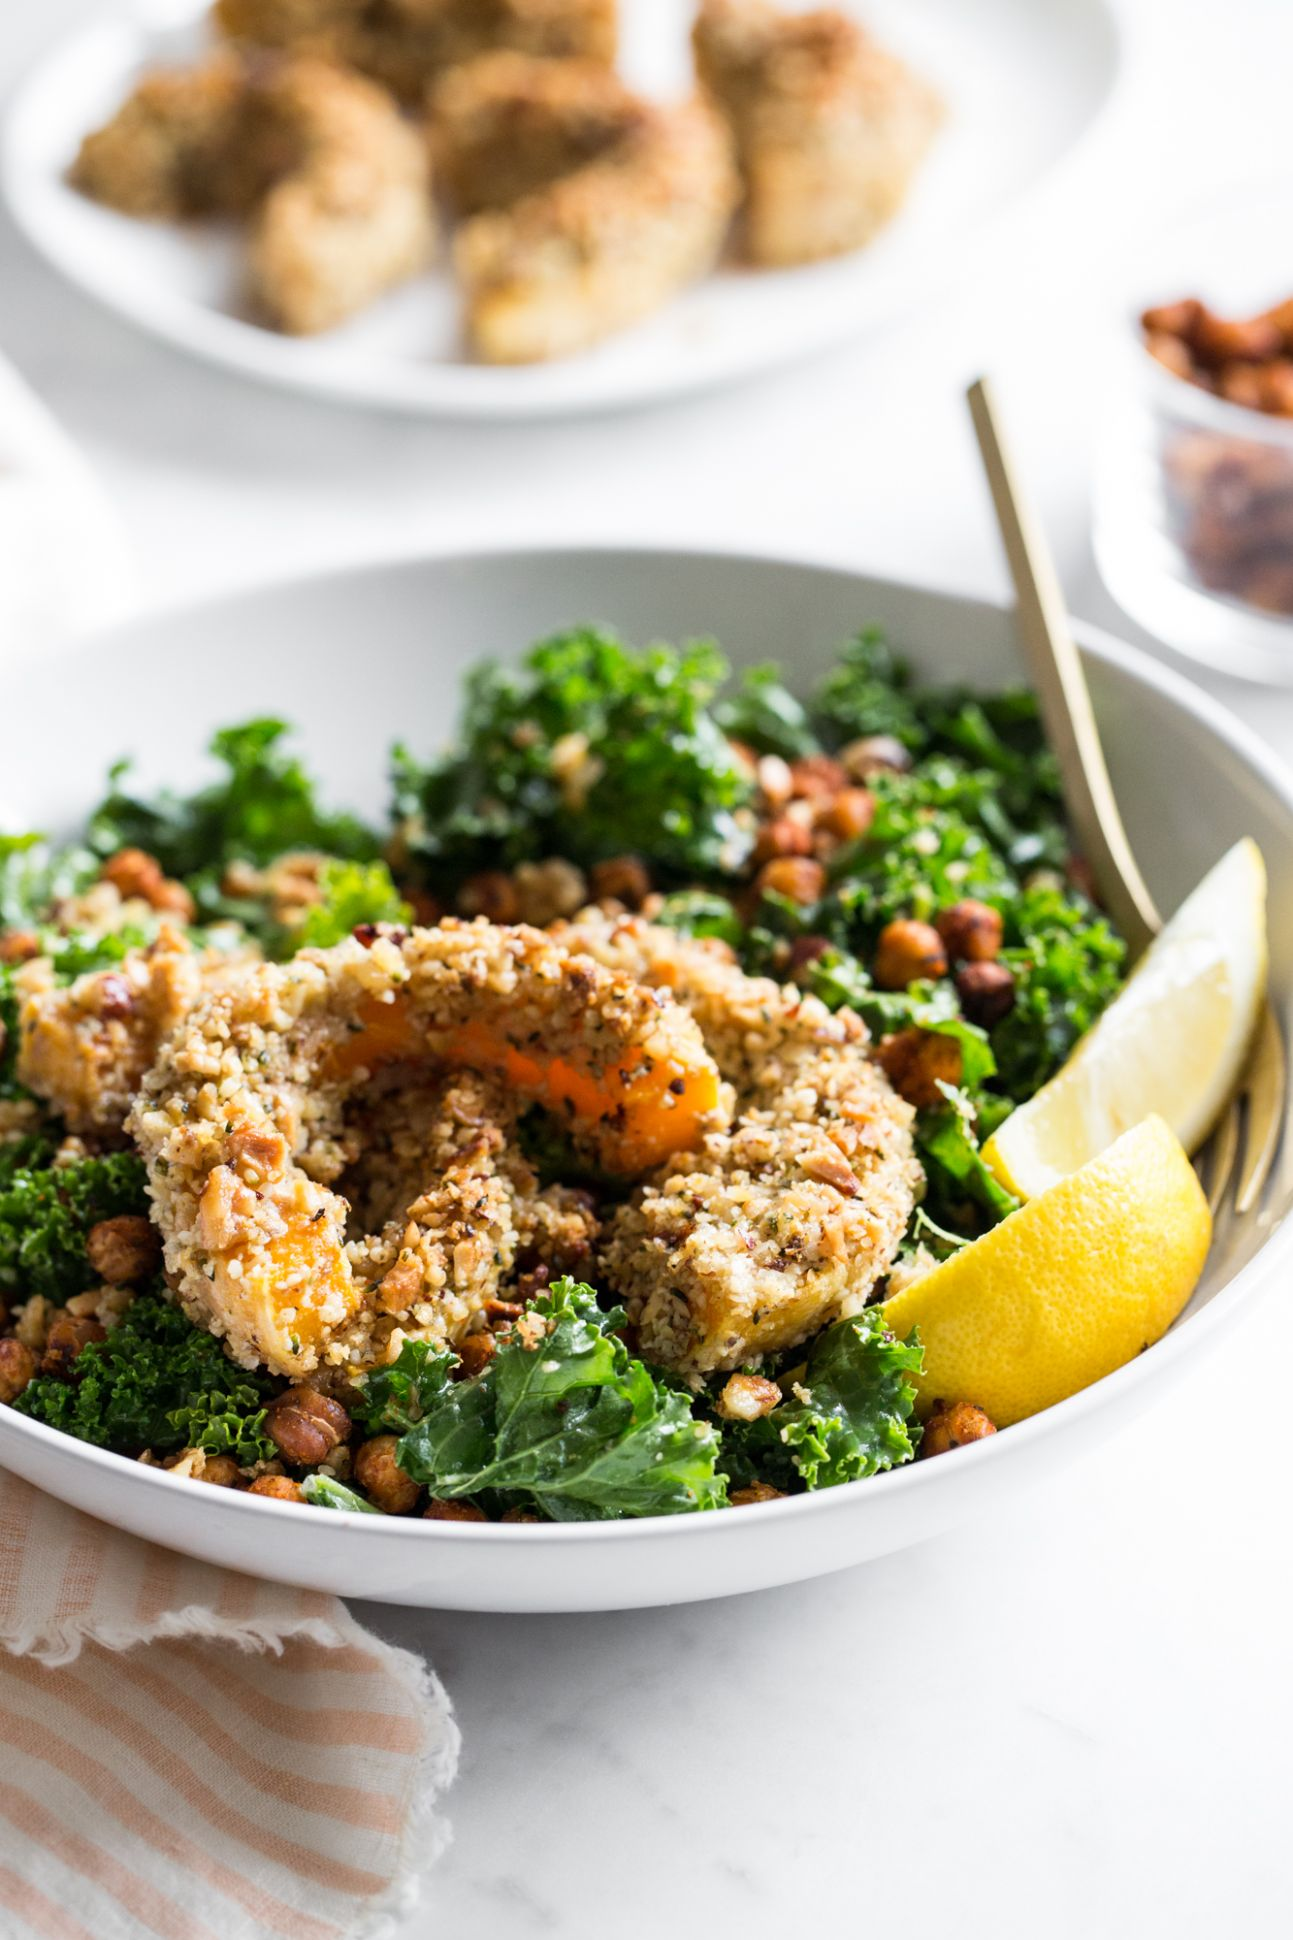 Nutty Crusted Butternut Squash Bowl - Summer Recipes Oh She Glows